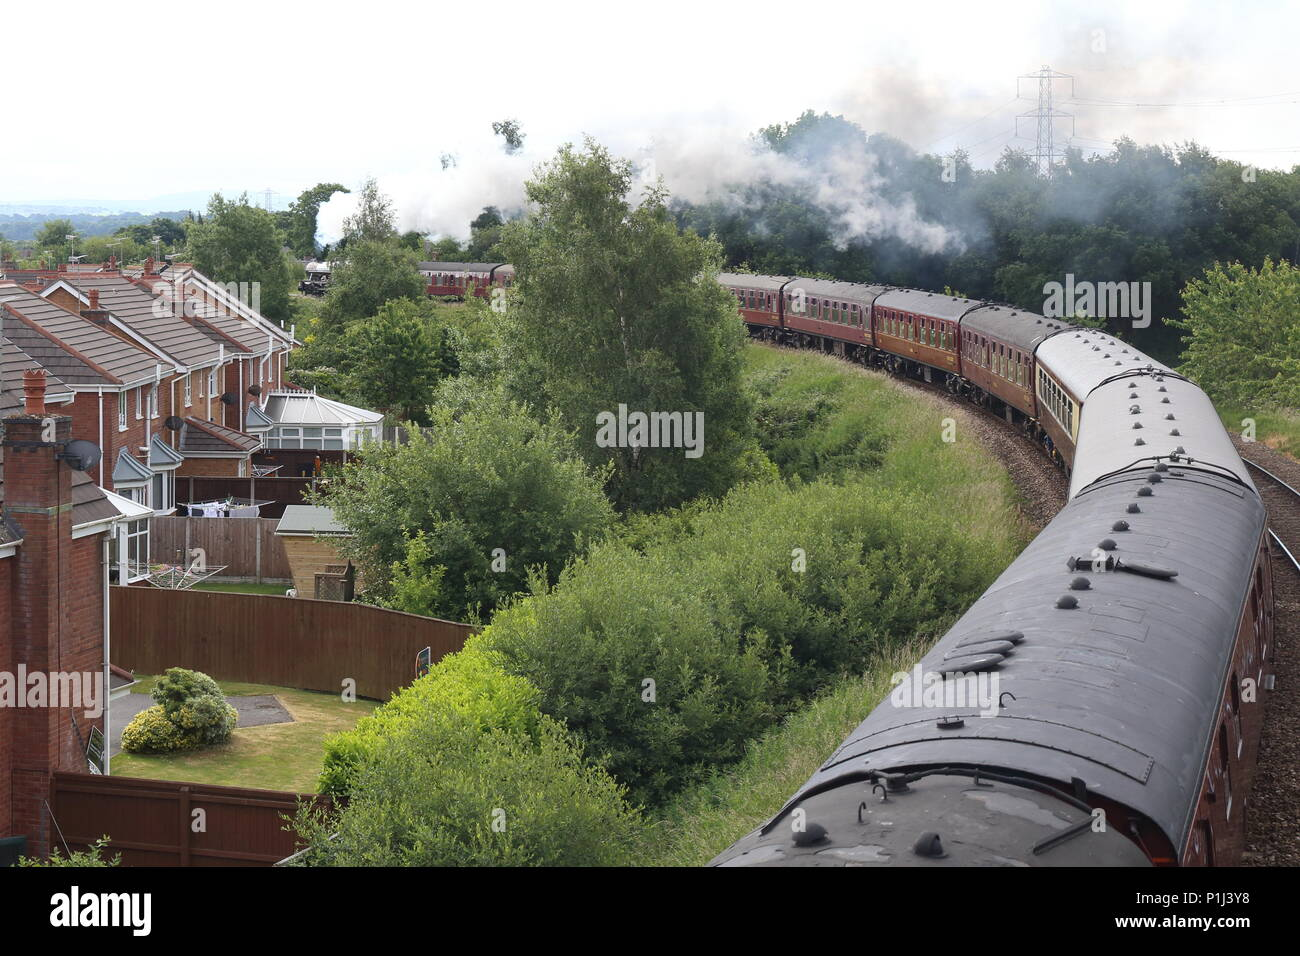 The Fellsman Steam Locomotive leads its carriages around the Farington Curve on its trip up the Settle Carlisle railway past private homes and gardens - Stock Image